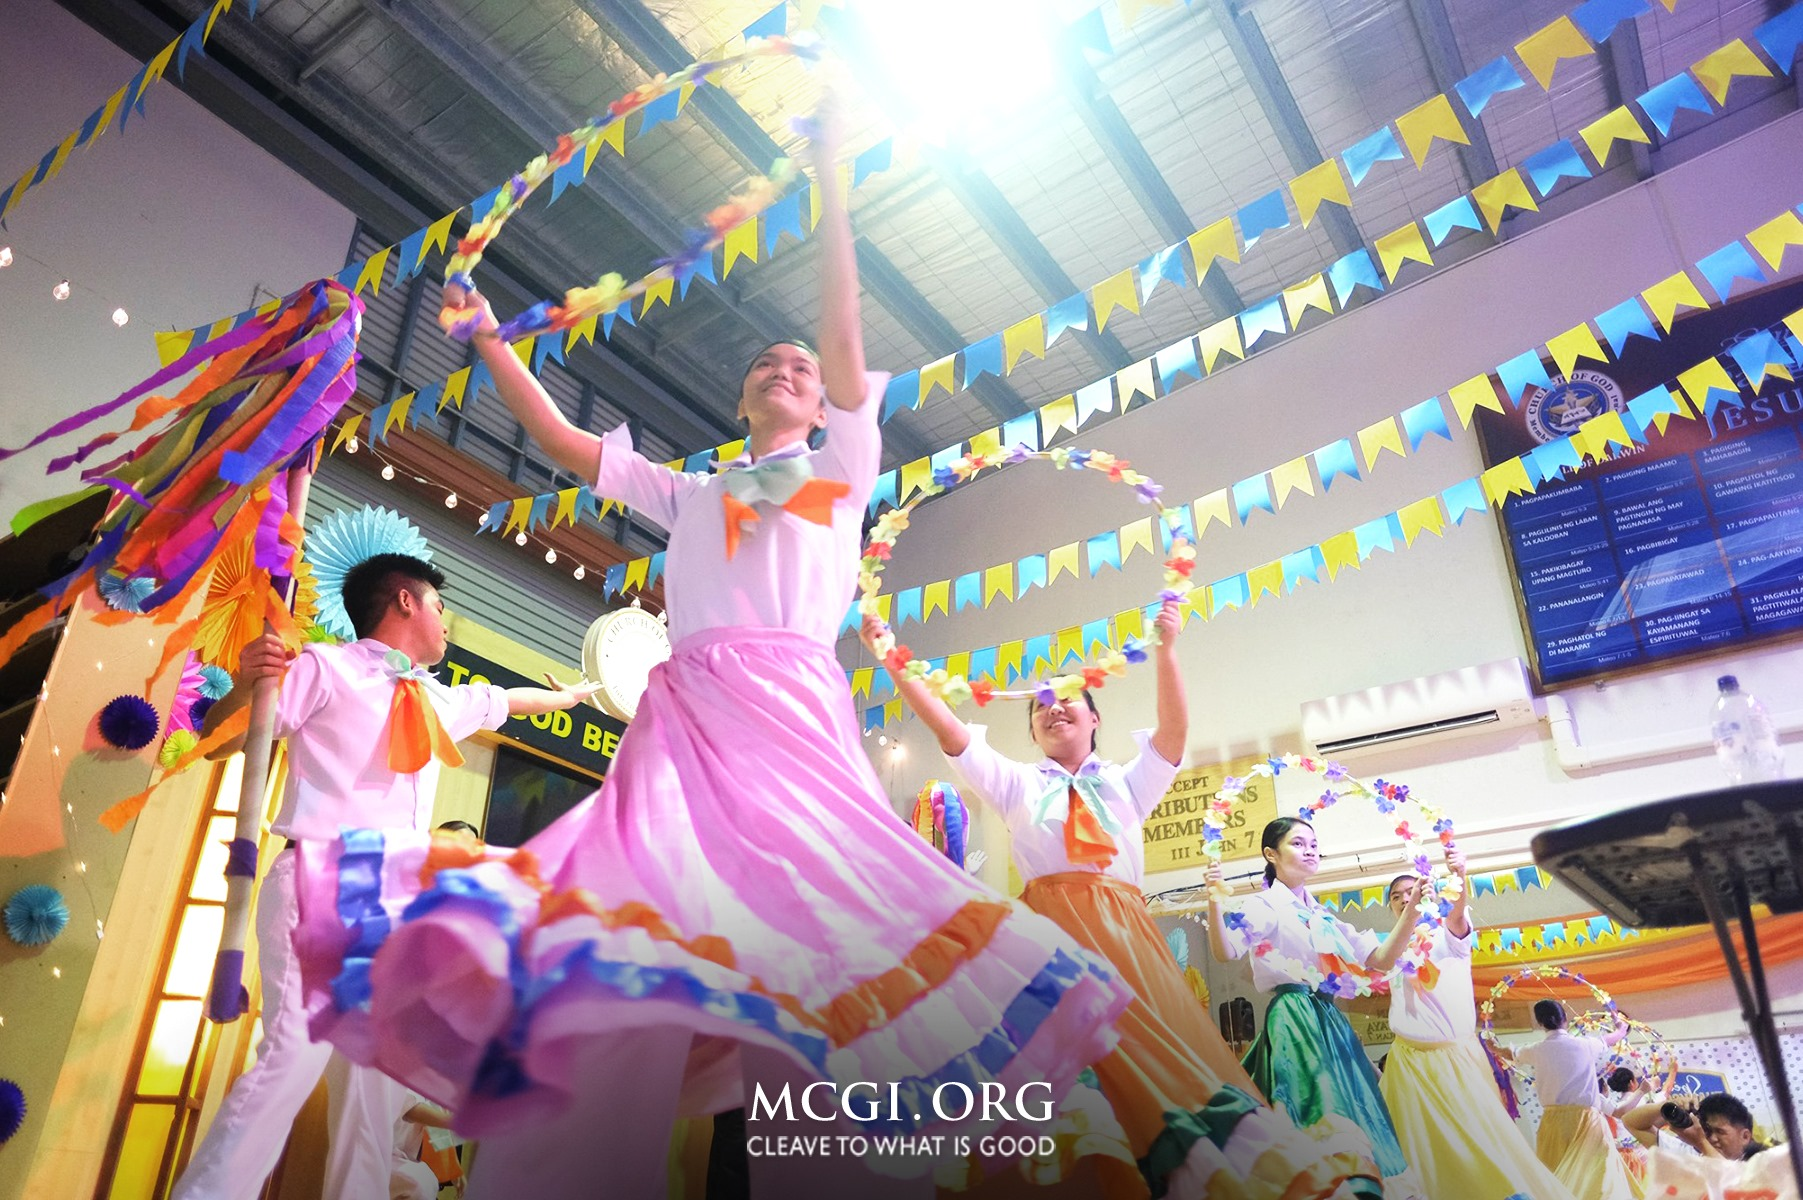 The opening presentations of MCGI's Teatro Kristiano and Music Ministry Choir are always a sight to behold with their colorful uniforms and bright energy.